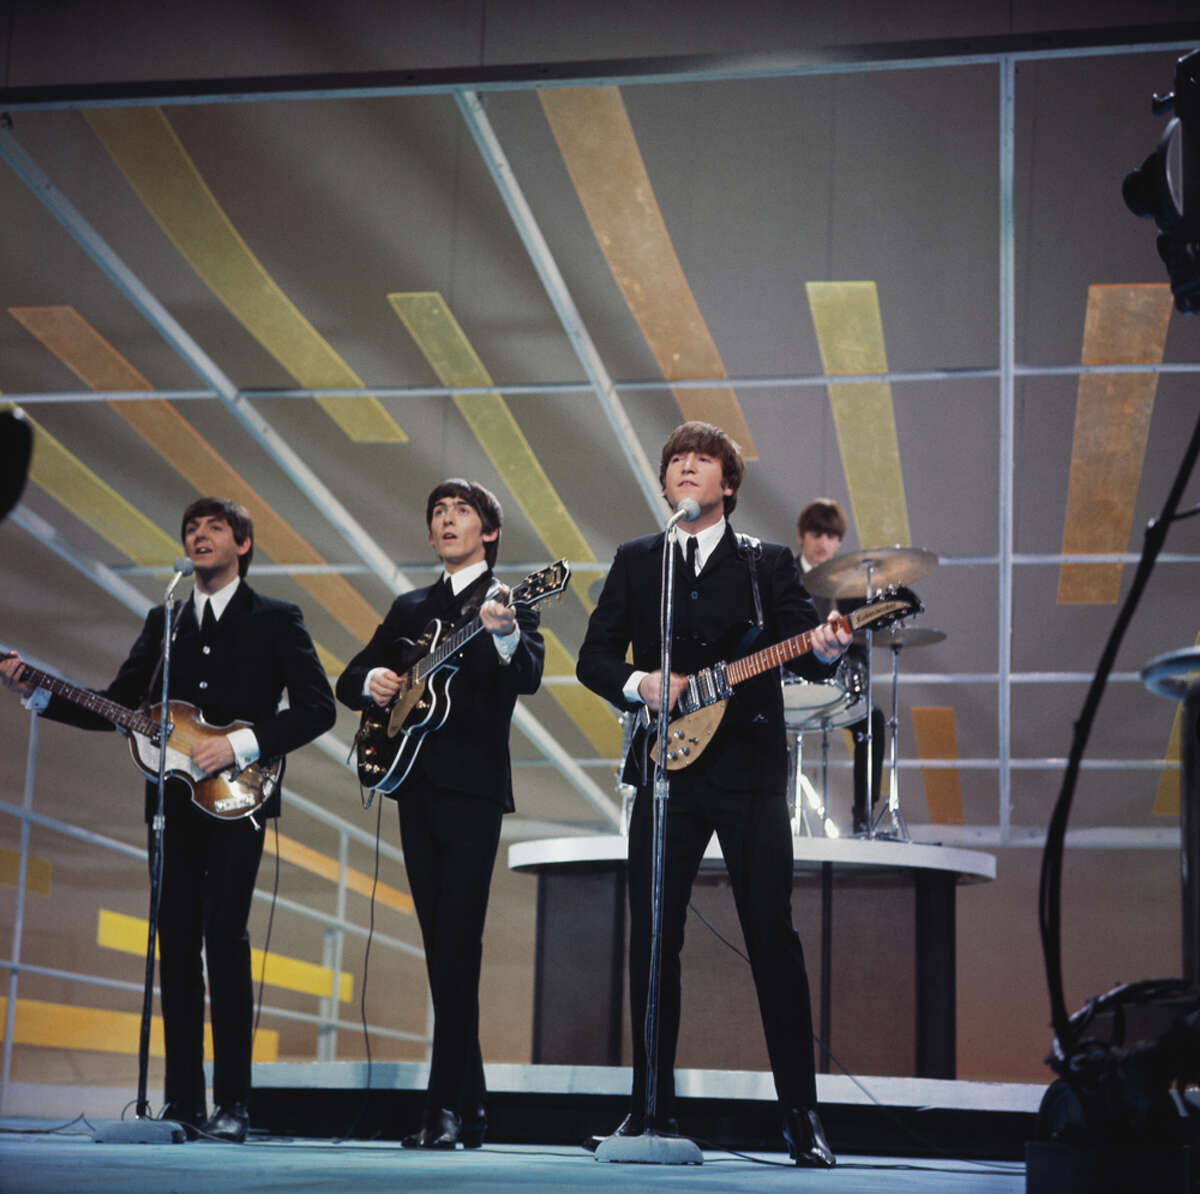 The Beatles - Paul McCartney (from left), George Harrison, John Lennon and Ringo Starr - performing on the Ed Sullivan Show in New York City, Feb. 9, 1964.